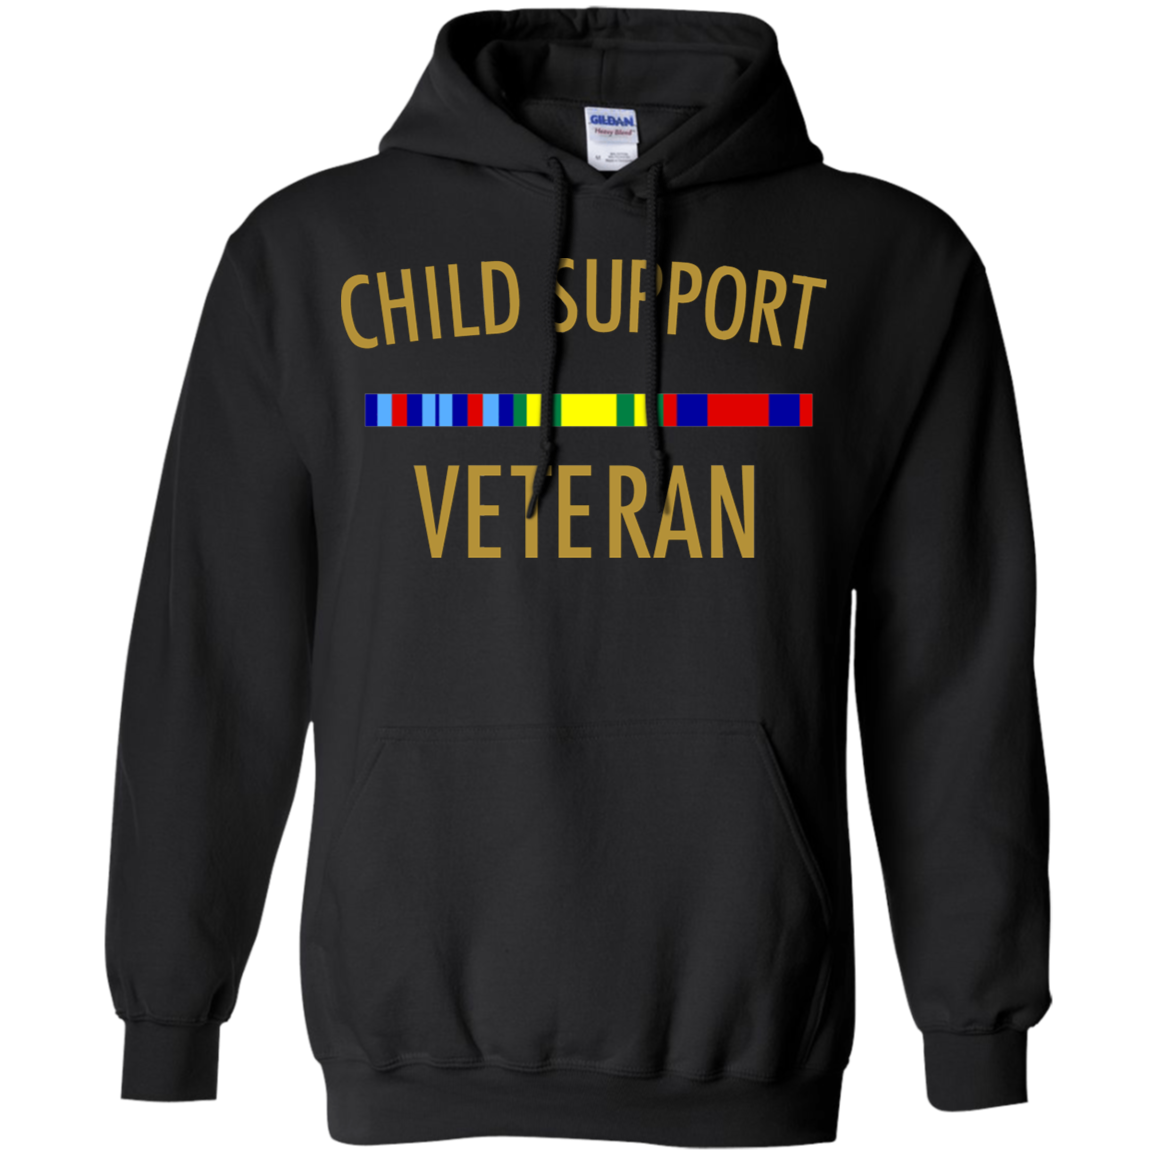 Child support veteran funny Hoodie